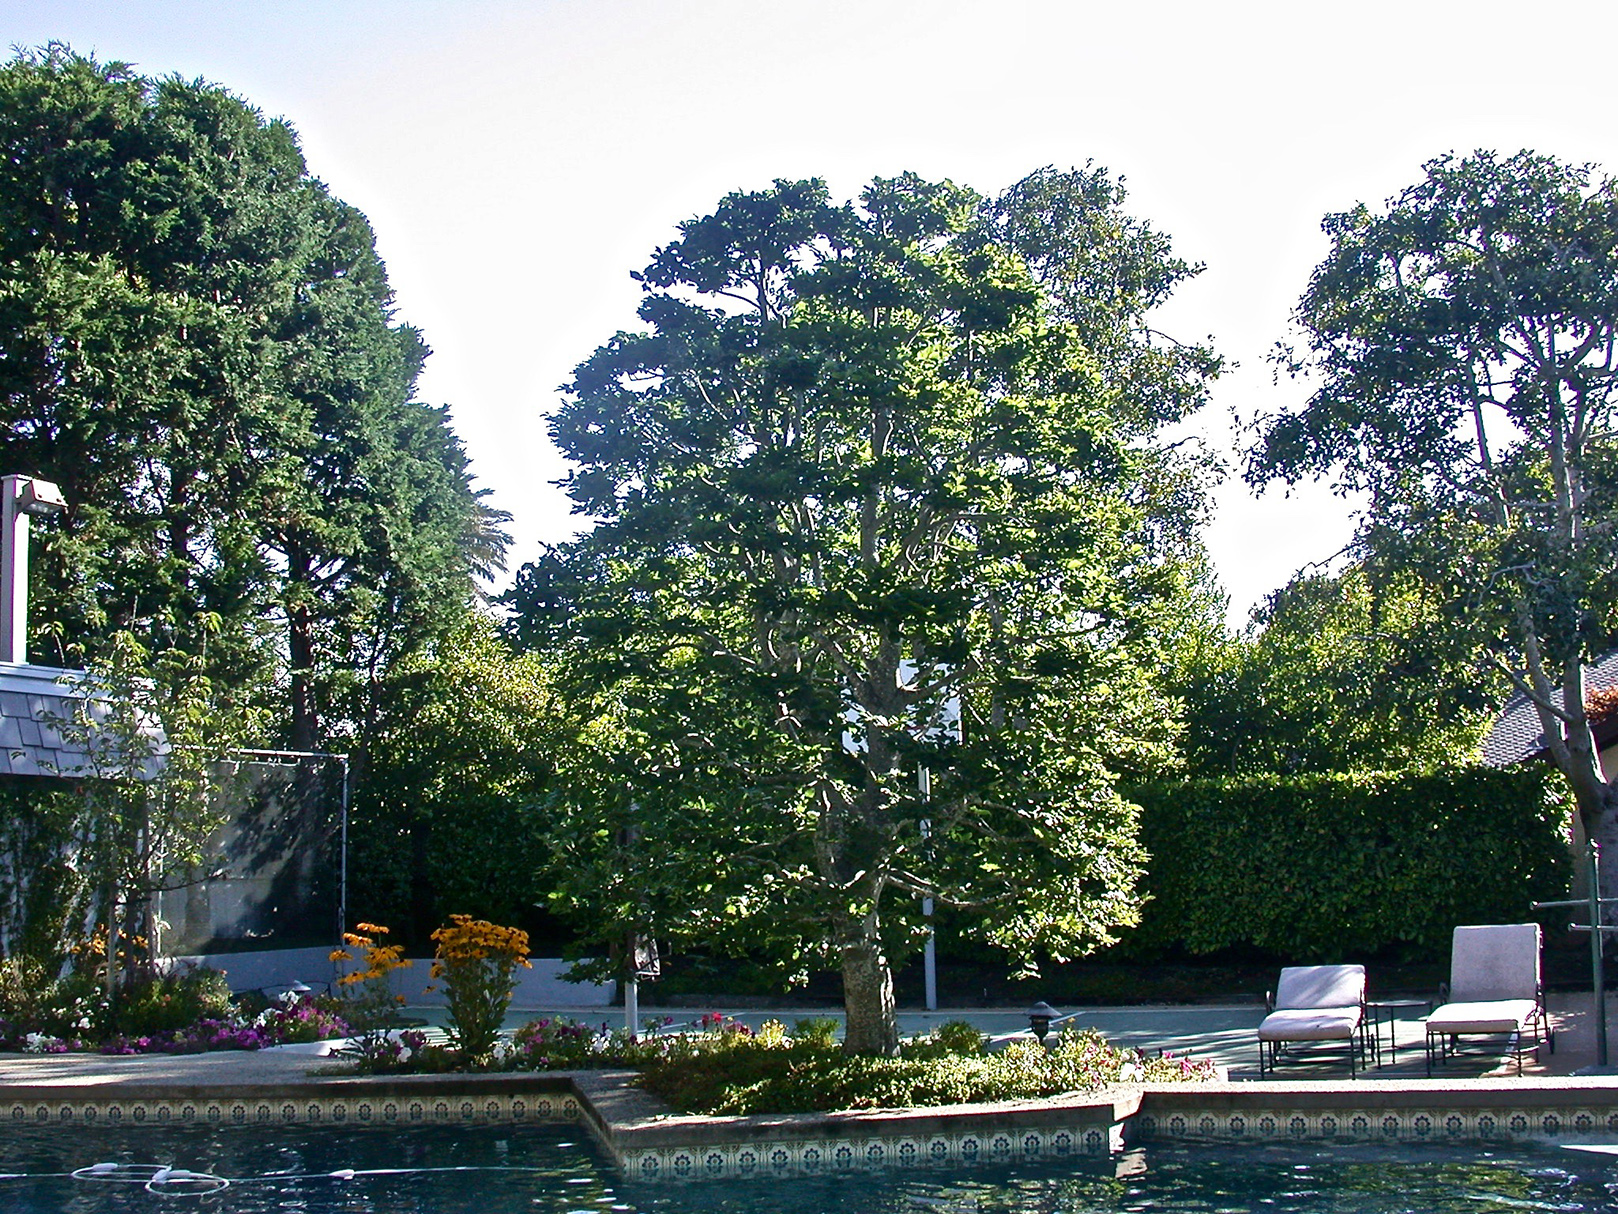 Beech Tree Next to a Pool